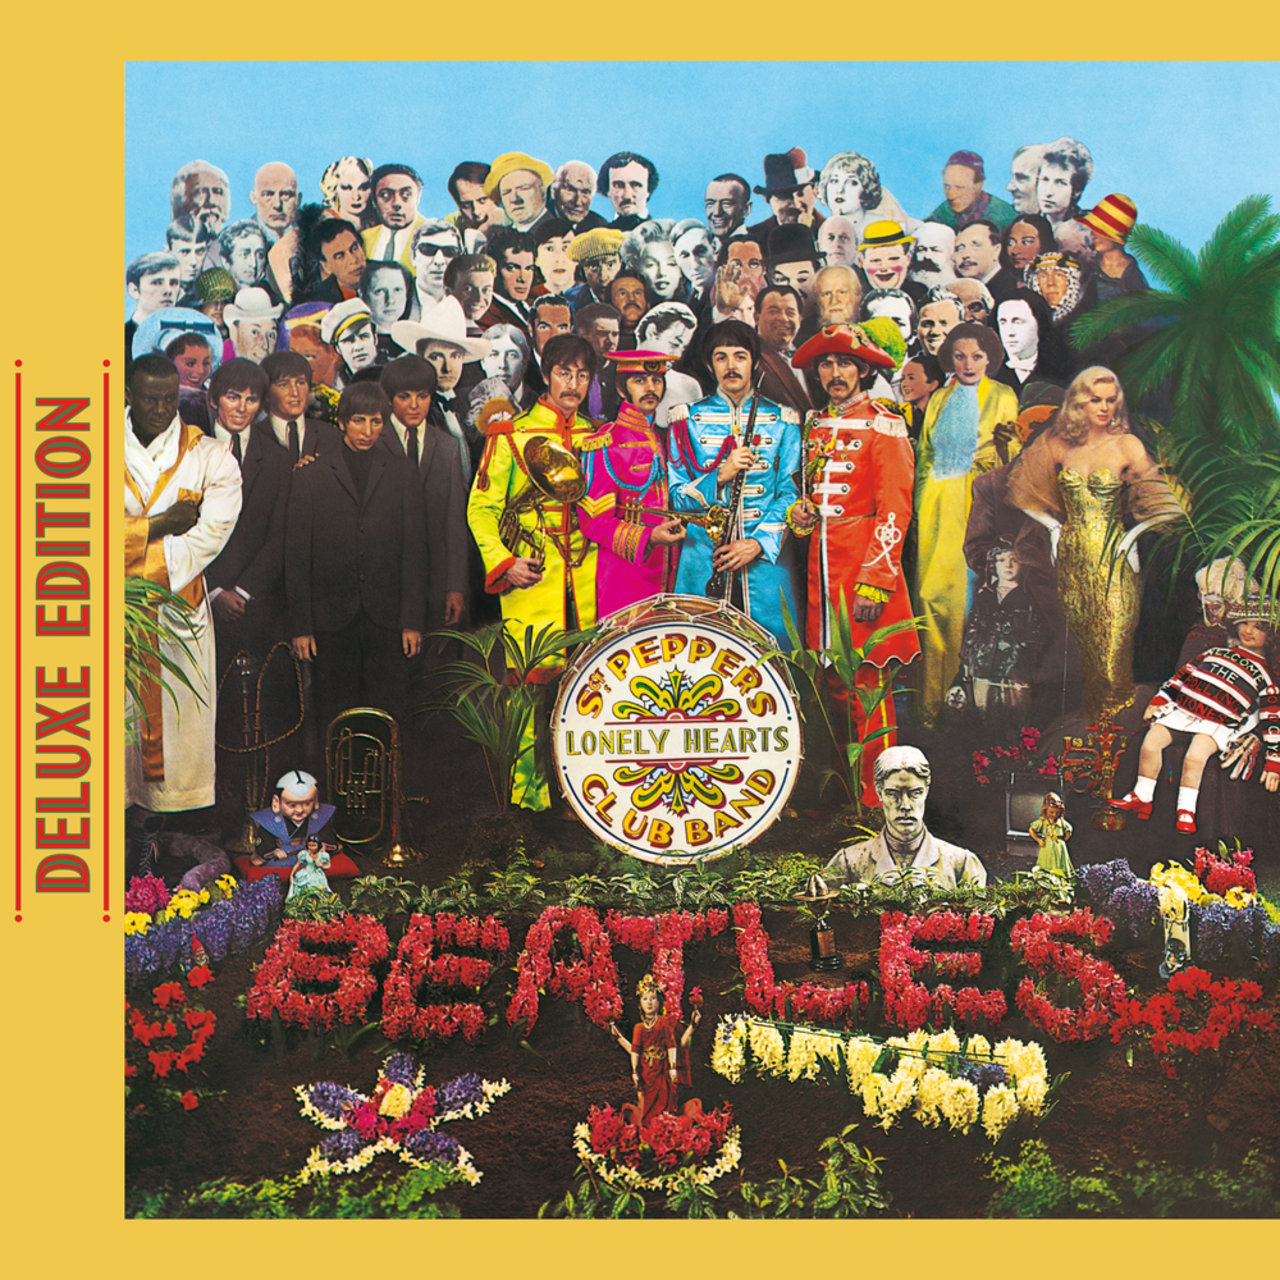 The Beatles - Sgt. Pepper's Lonely Hearts Club Band (2 CD) (Deluxe Edition)